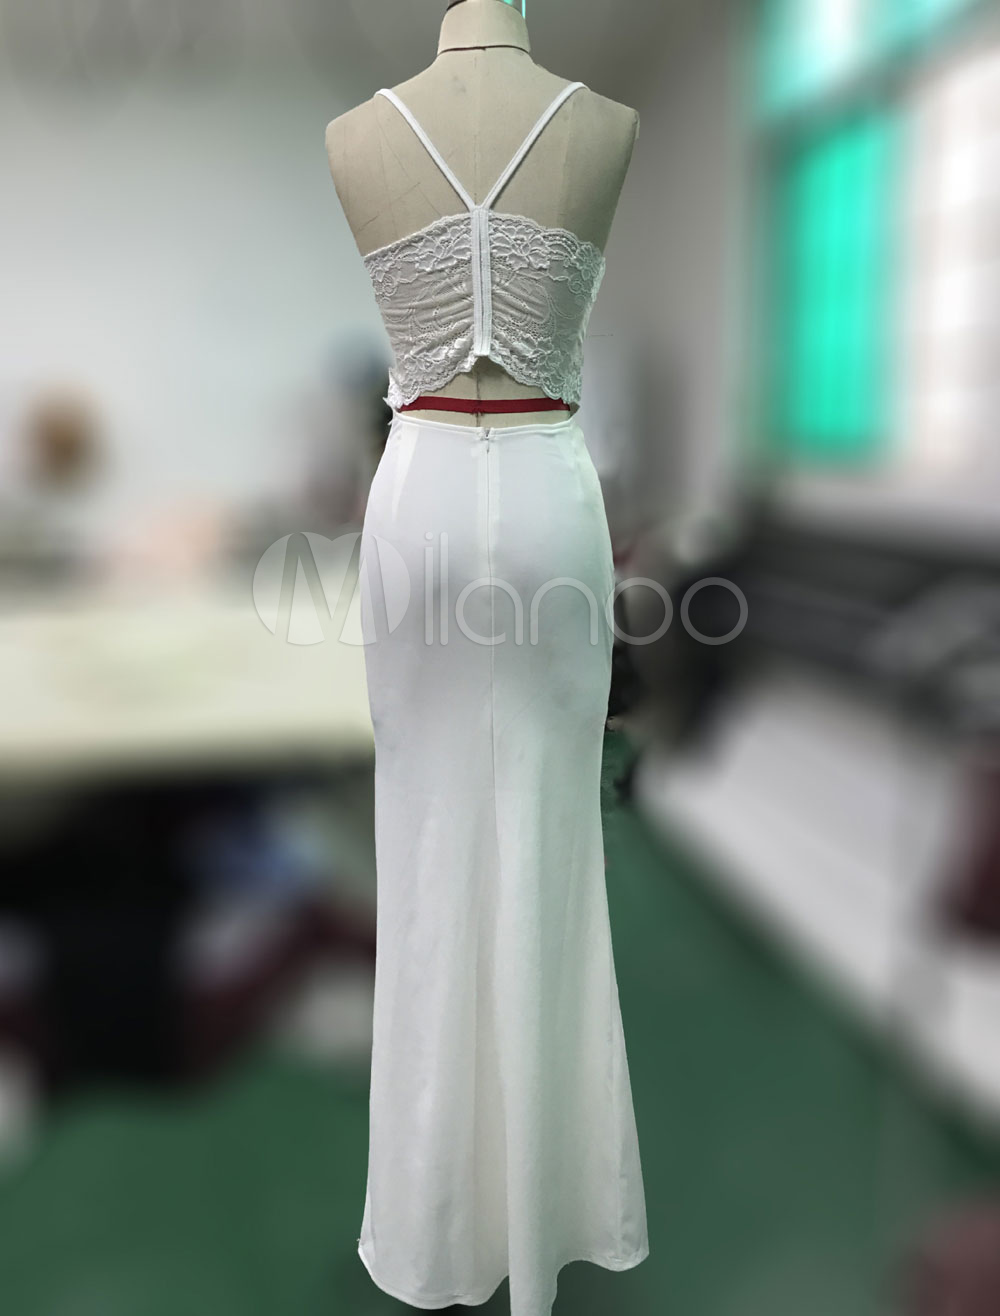 c3f43f84eb6 ... White Long Dress Strappy Sleeveless Slim Fit Maxi Dress Women Bodycon  Dress-No.3